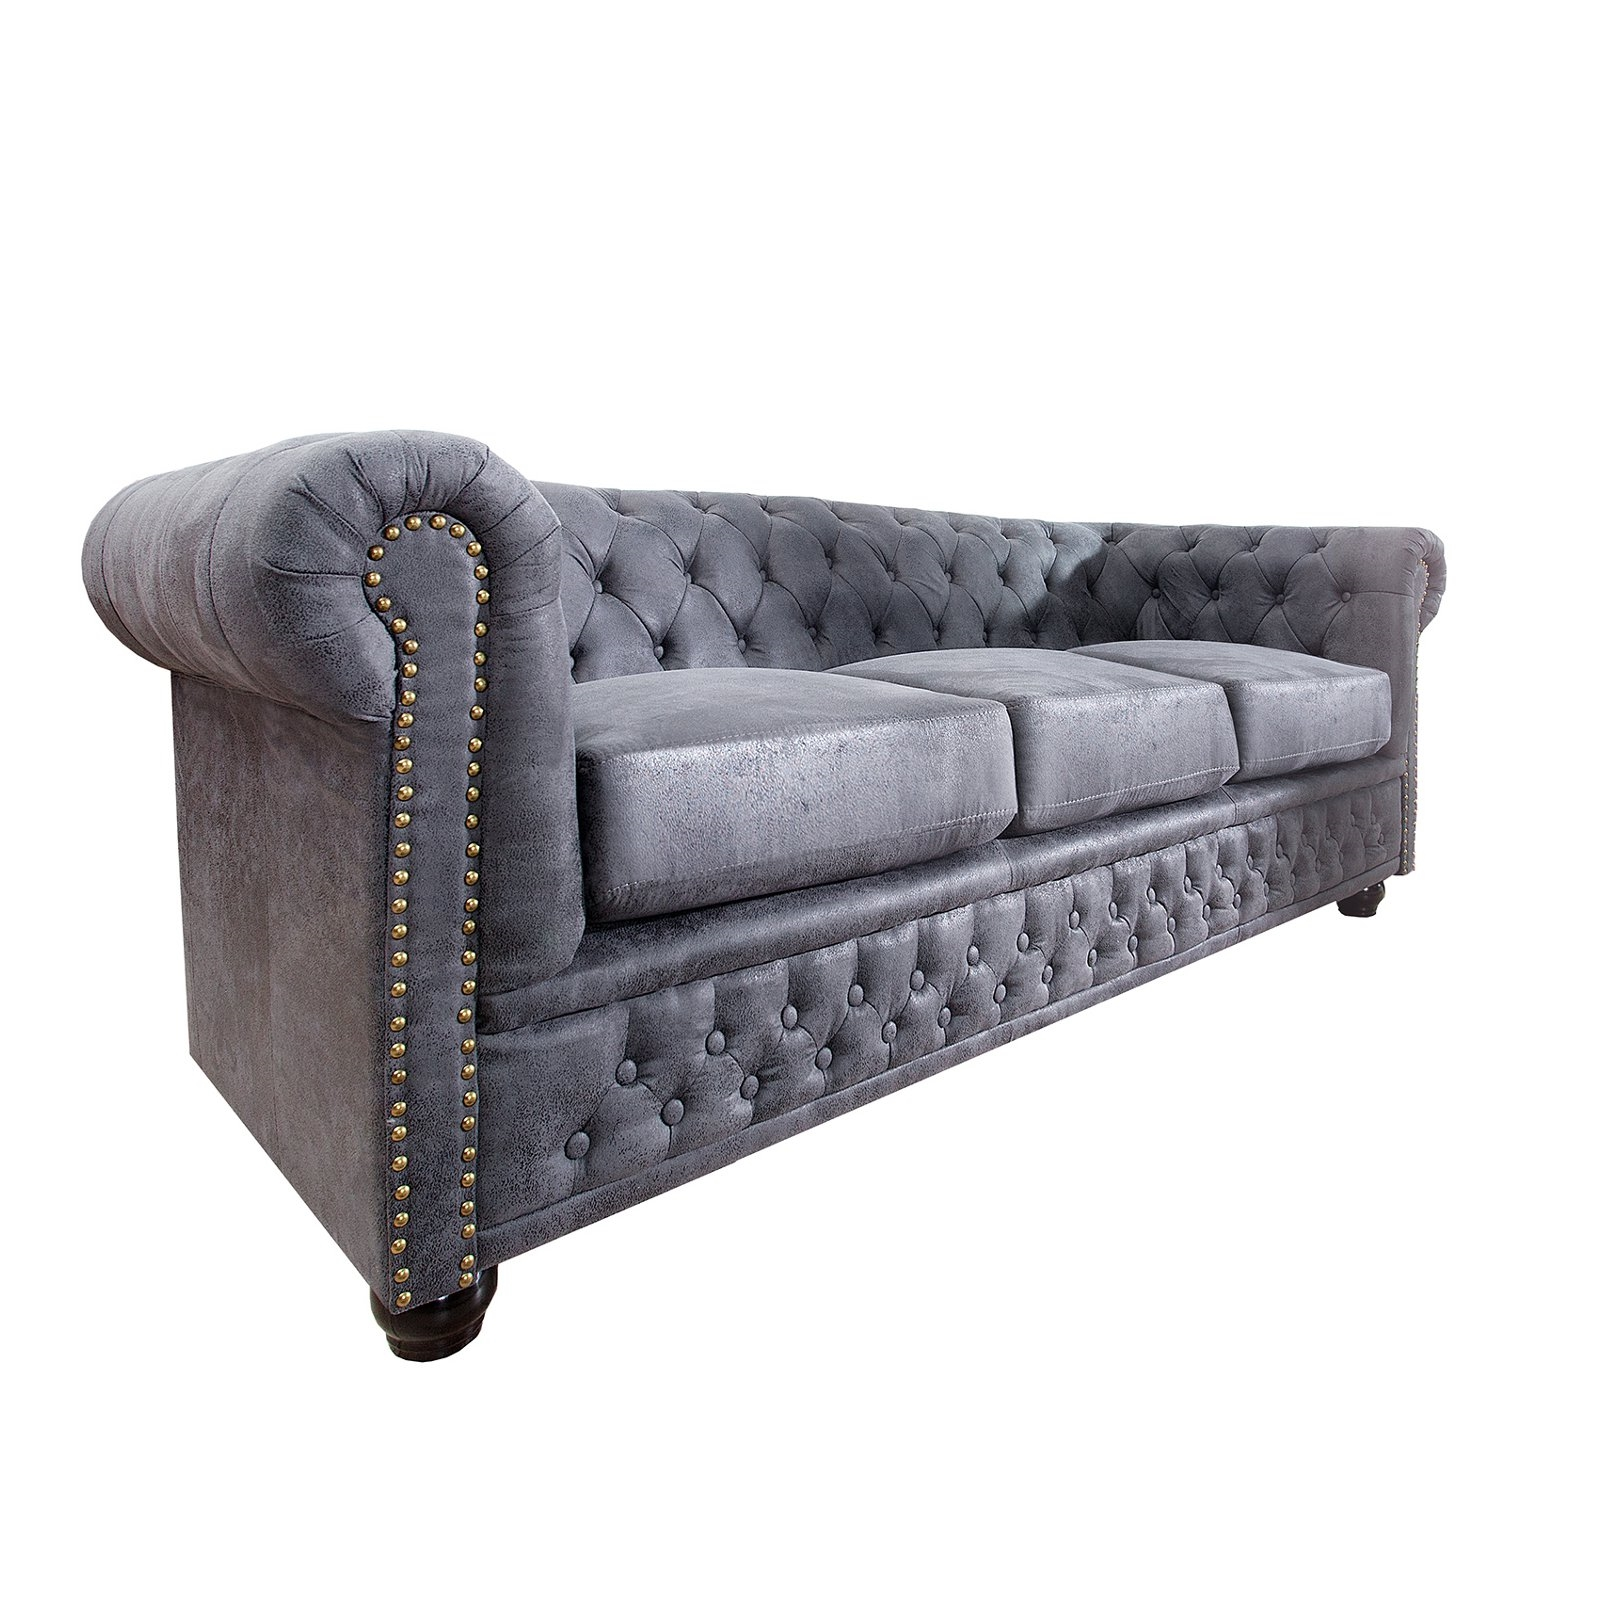 design chesterfield sofa manchester 200x70x85 cm antik grau dreisitzer ebay. Black Bedroom Furniture Sets. Home Design Ideas